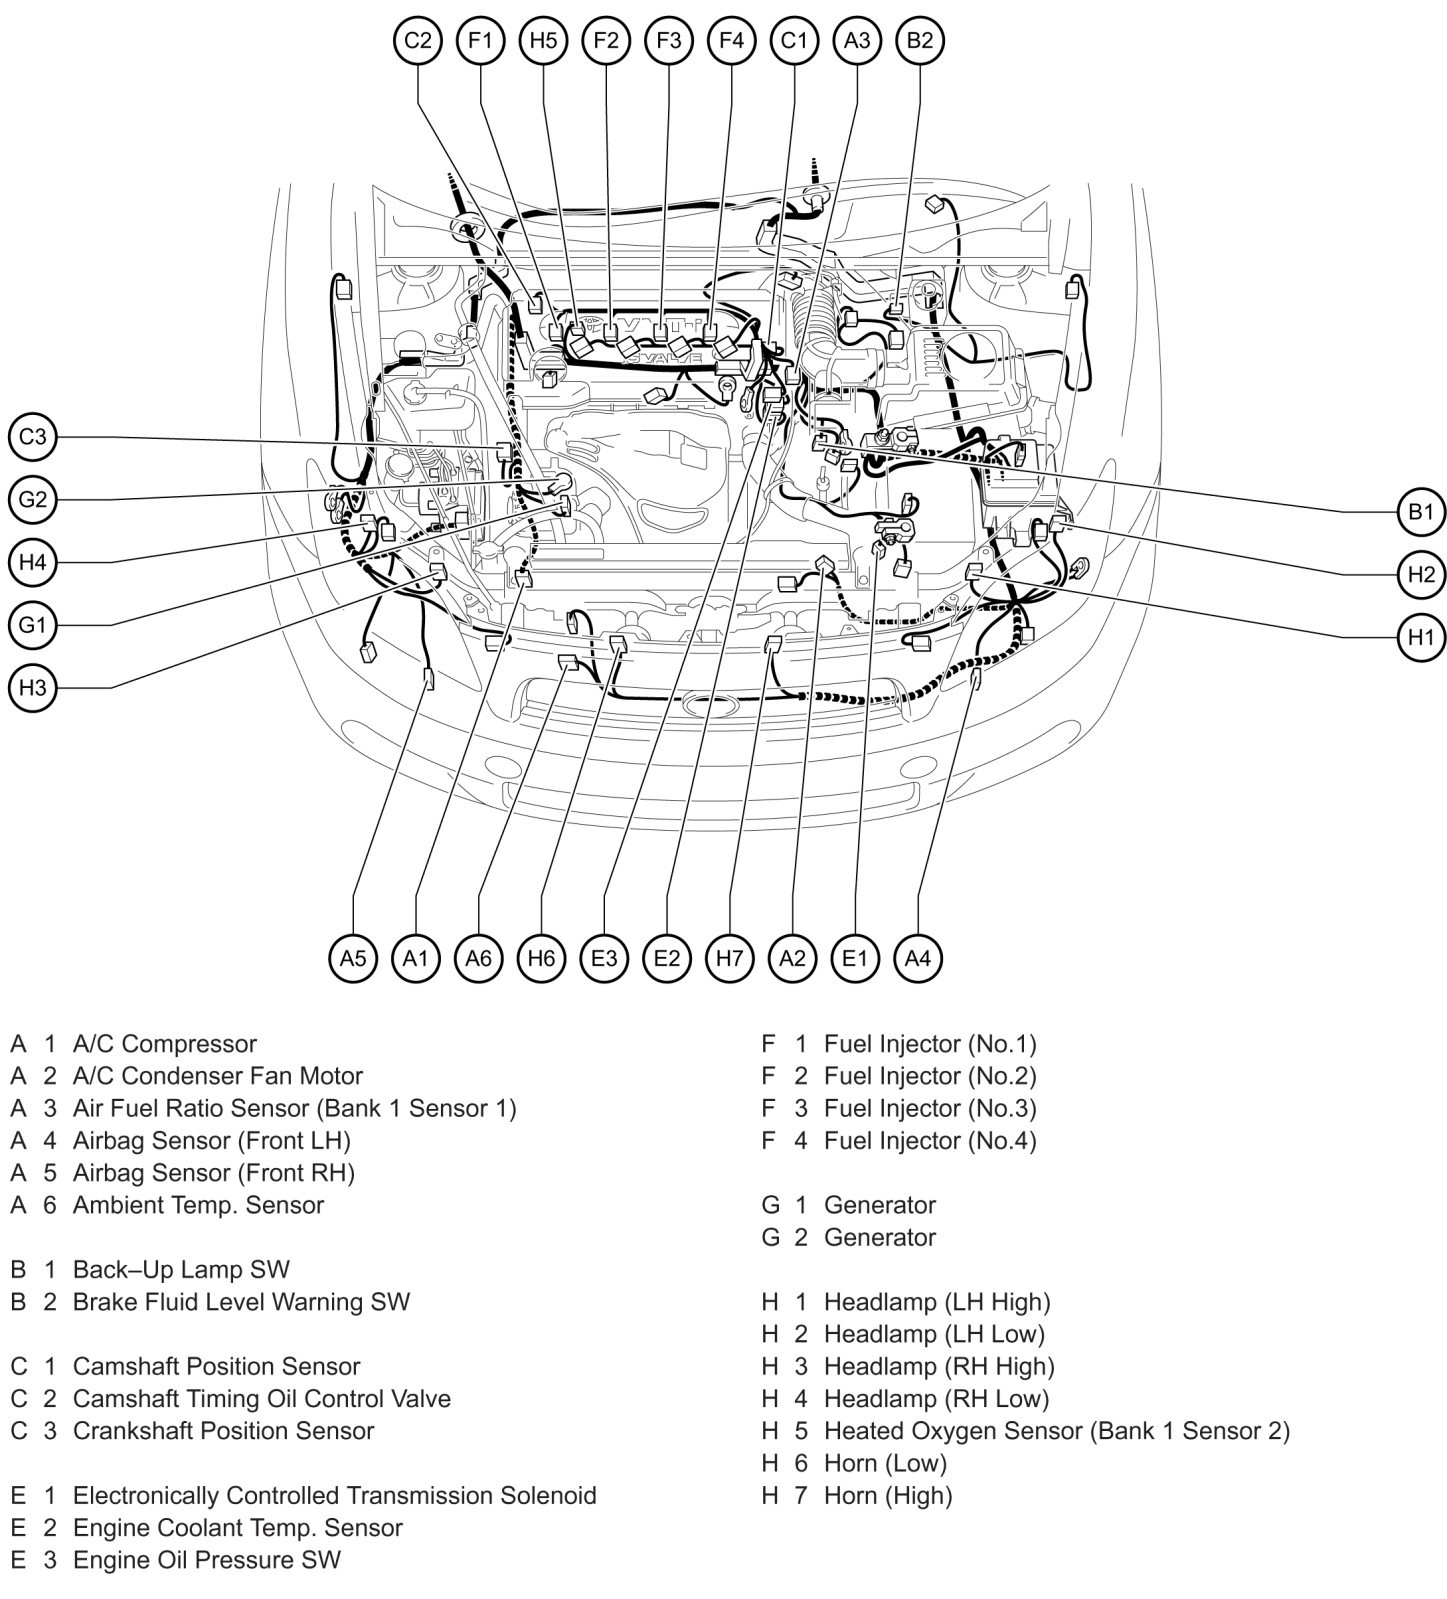 2006 Scion Tc Engine Diagram Scion Tc Engine Diagram Schematic Wiring Diagram • Of 2006 Scion Tc Engine Diagram